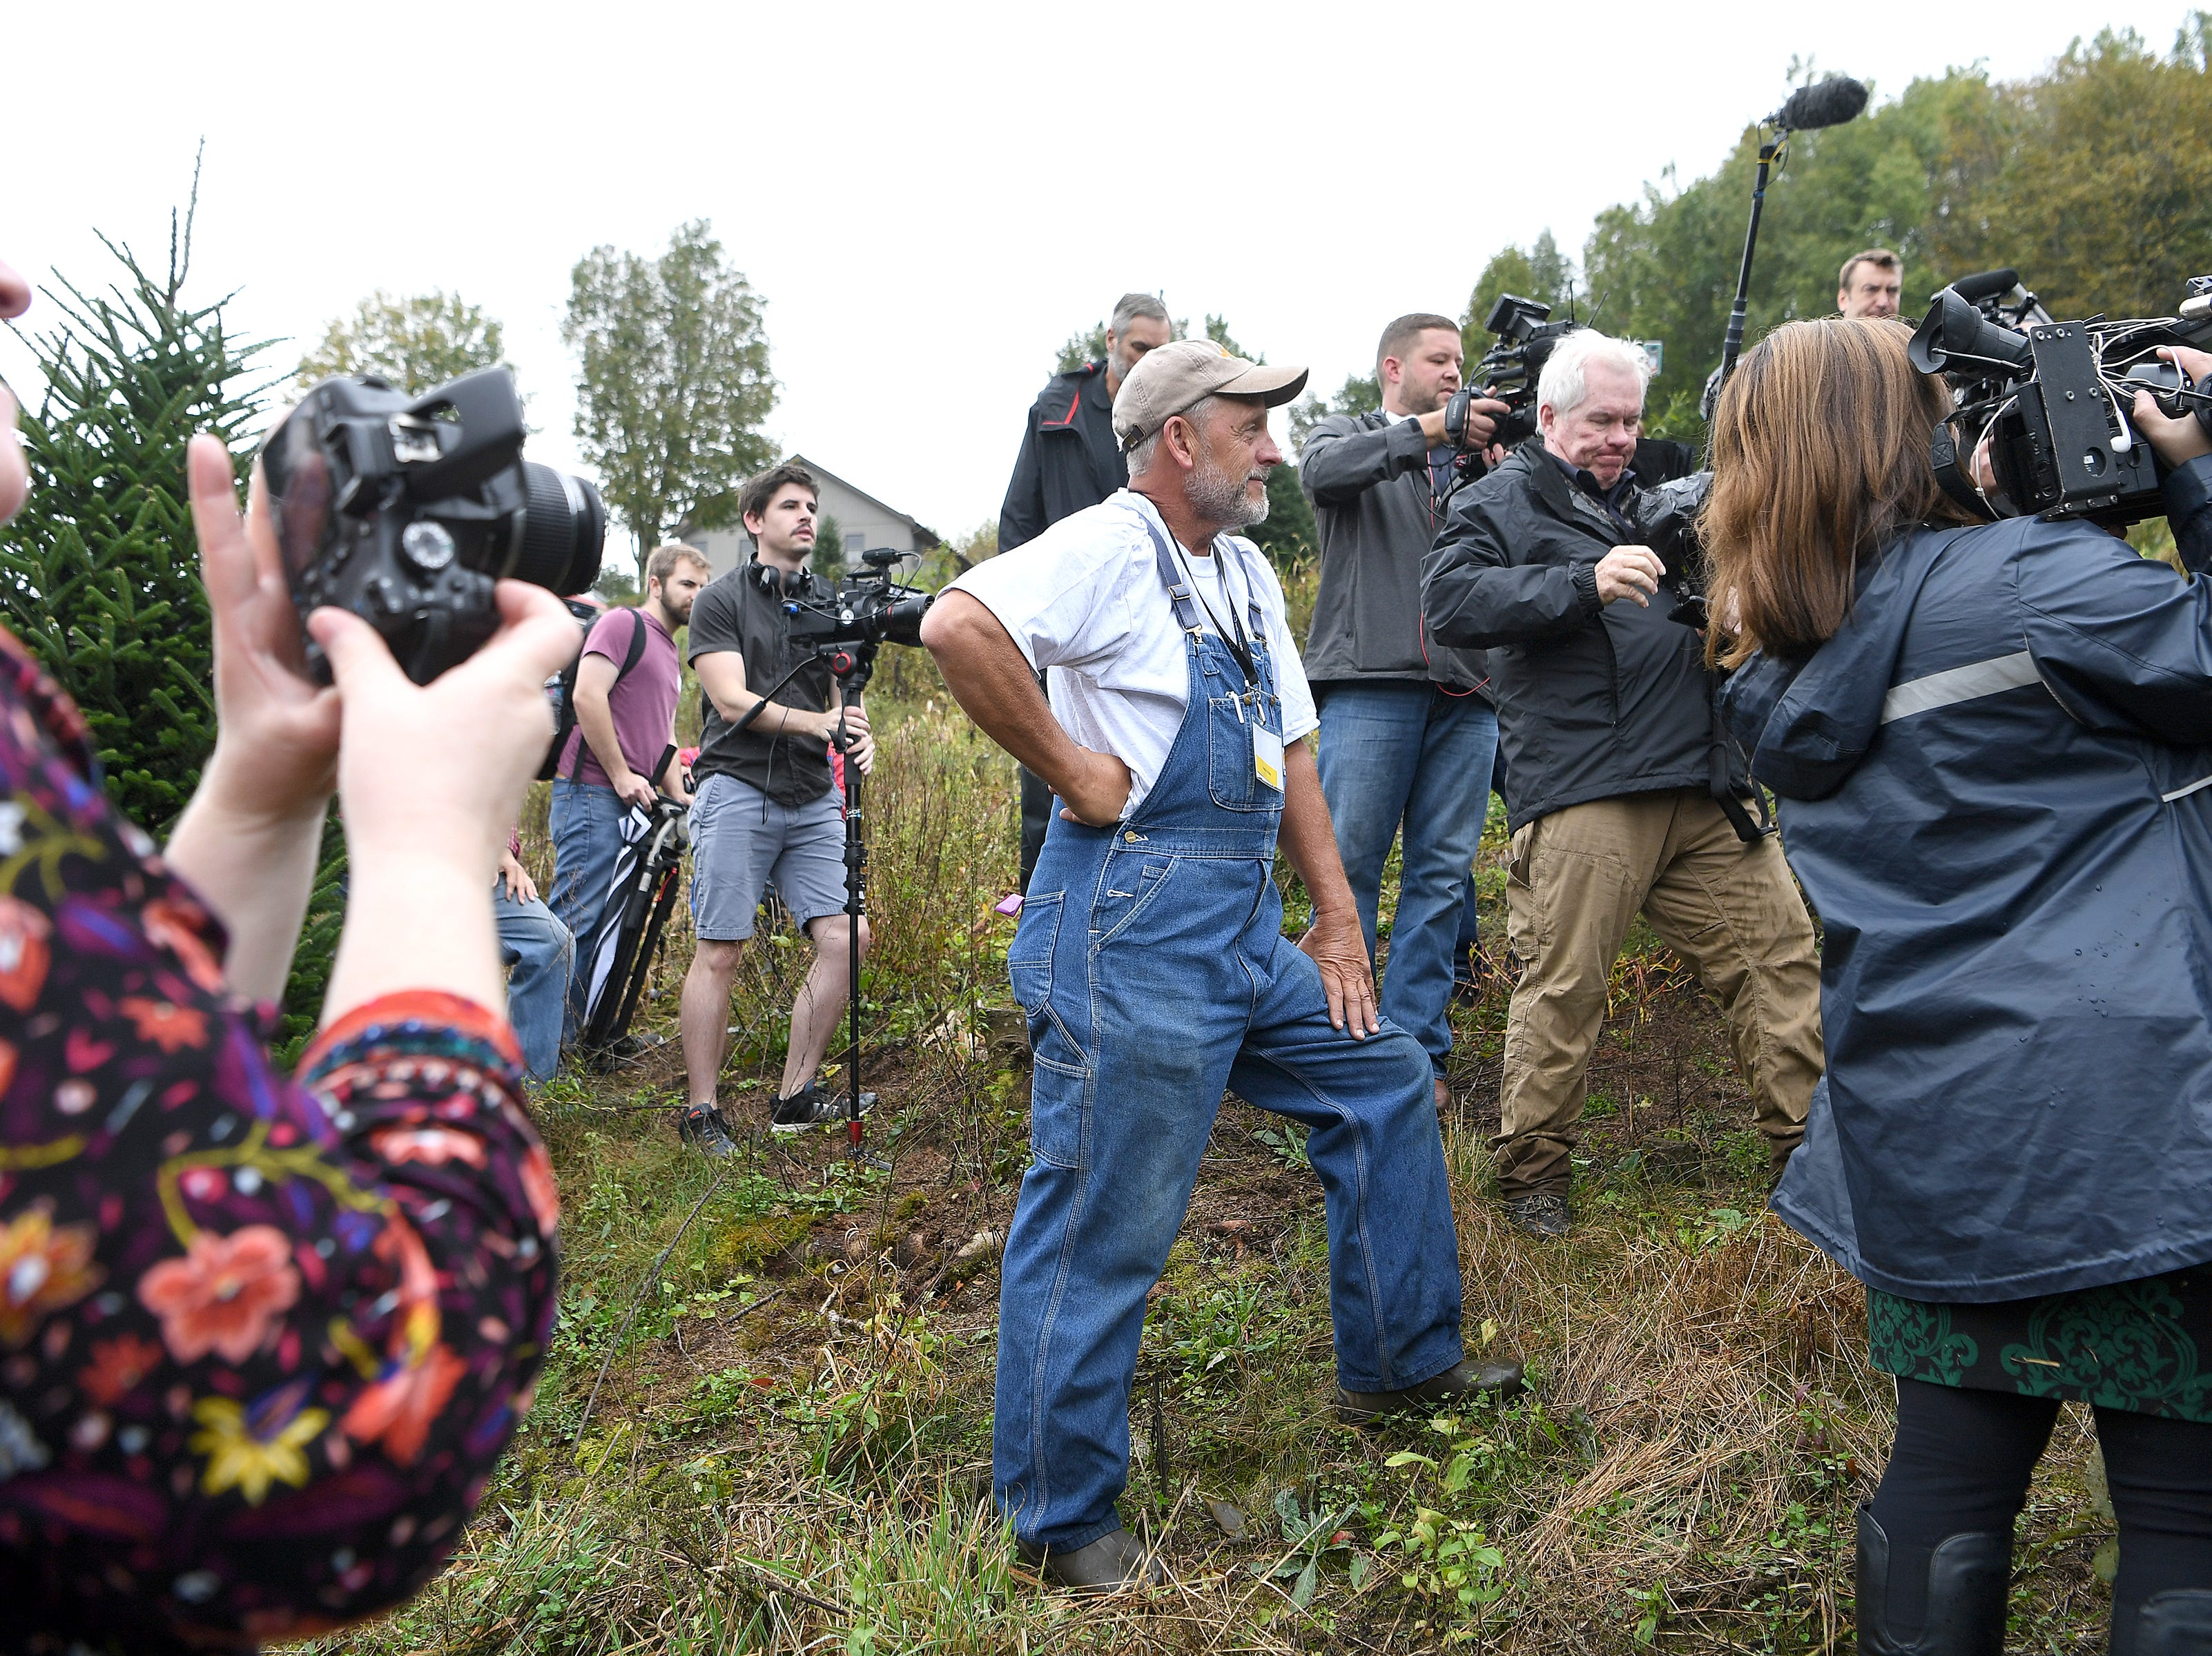 Avery County Christmas tree grower Larry Smith watches as White House officials are recorded by member of the media as they search his farm for the perfect tree to display in the Blue Room of the White House during an event at his farm in Newland on Sept. 24, 2018. Smith was given the honor of providing a tree after being named Grand Champion in the National Christmas Tree Association's Christmas tree contest.